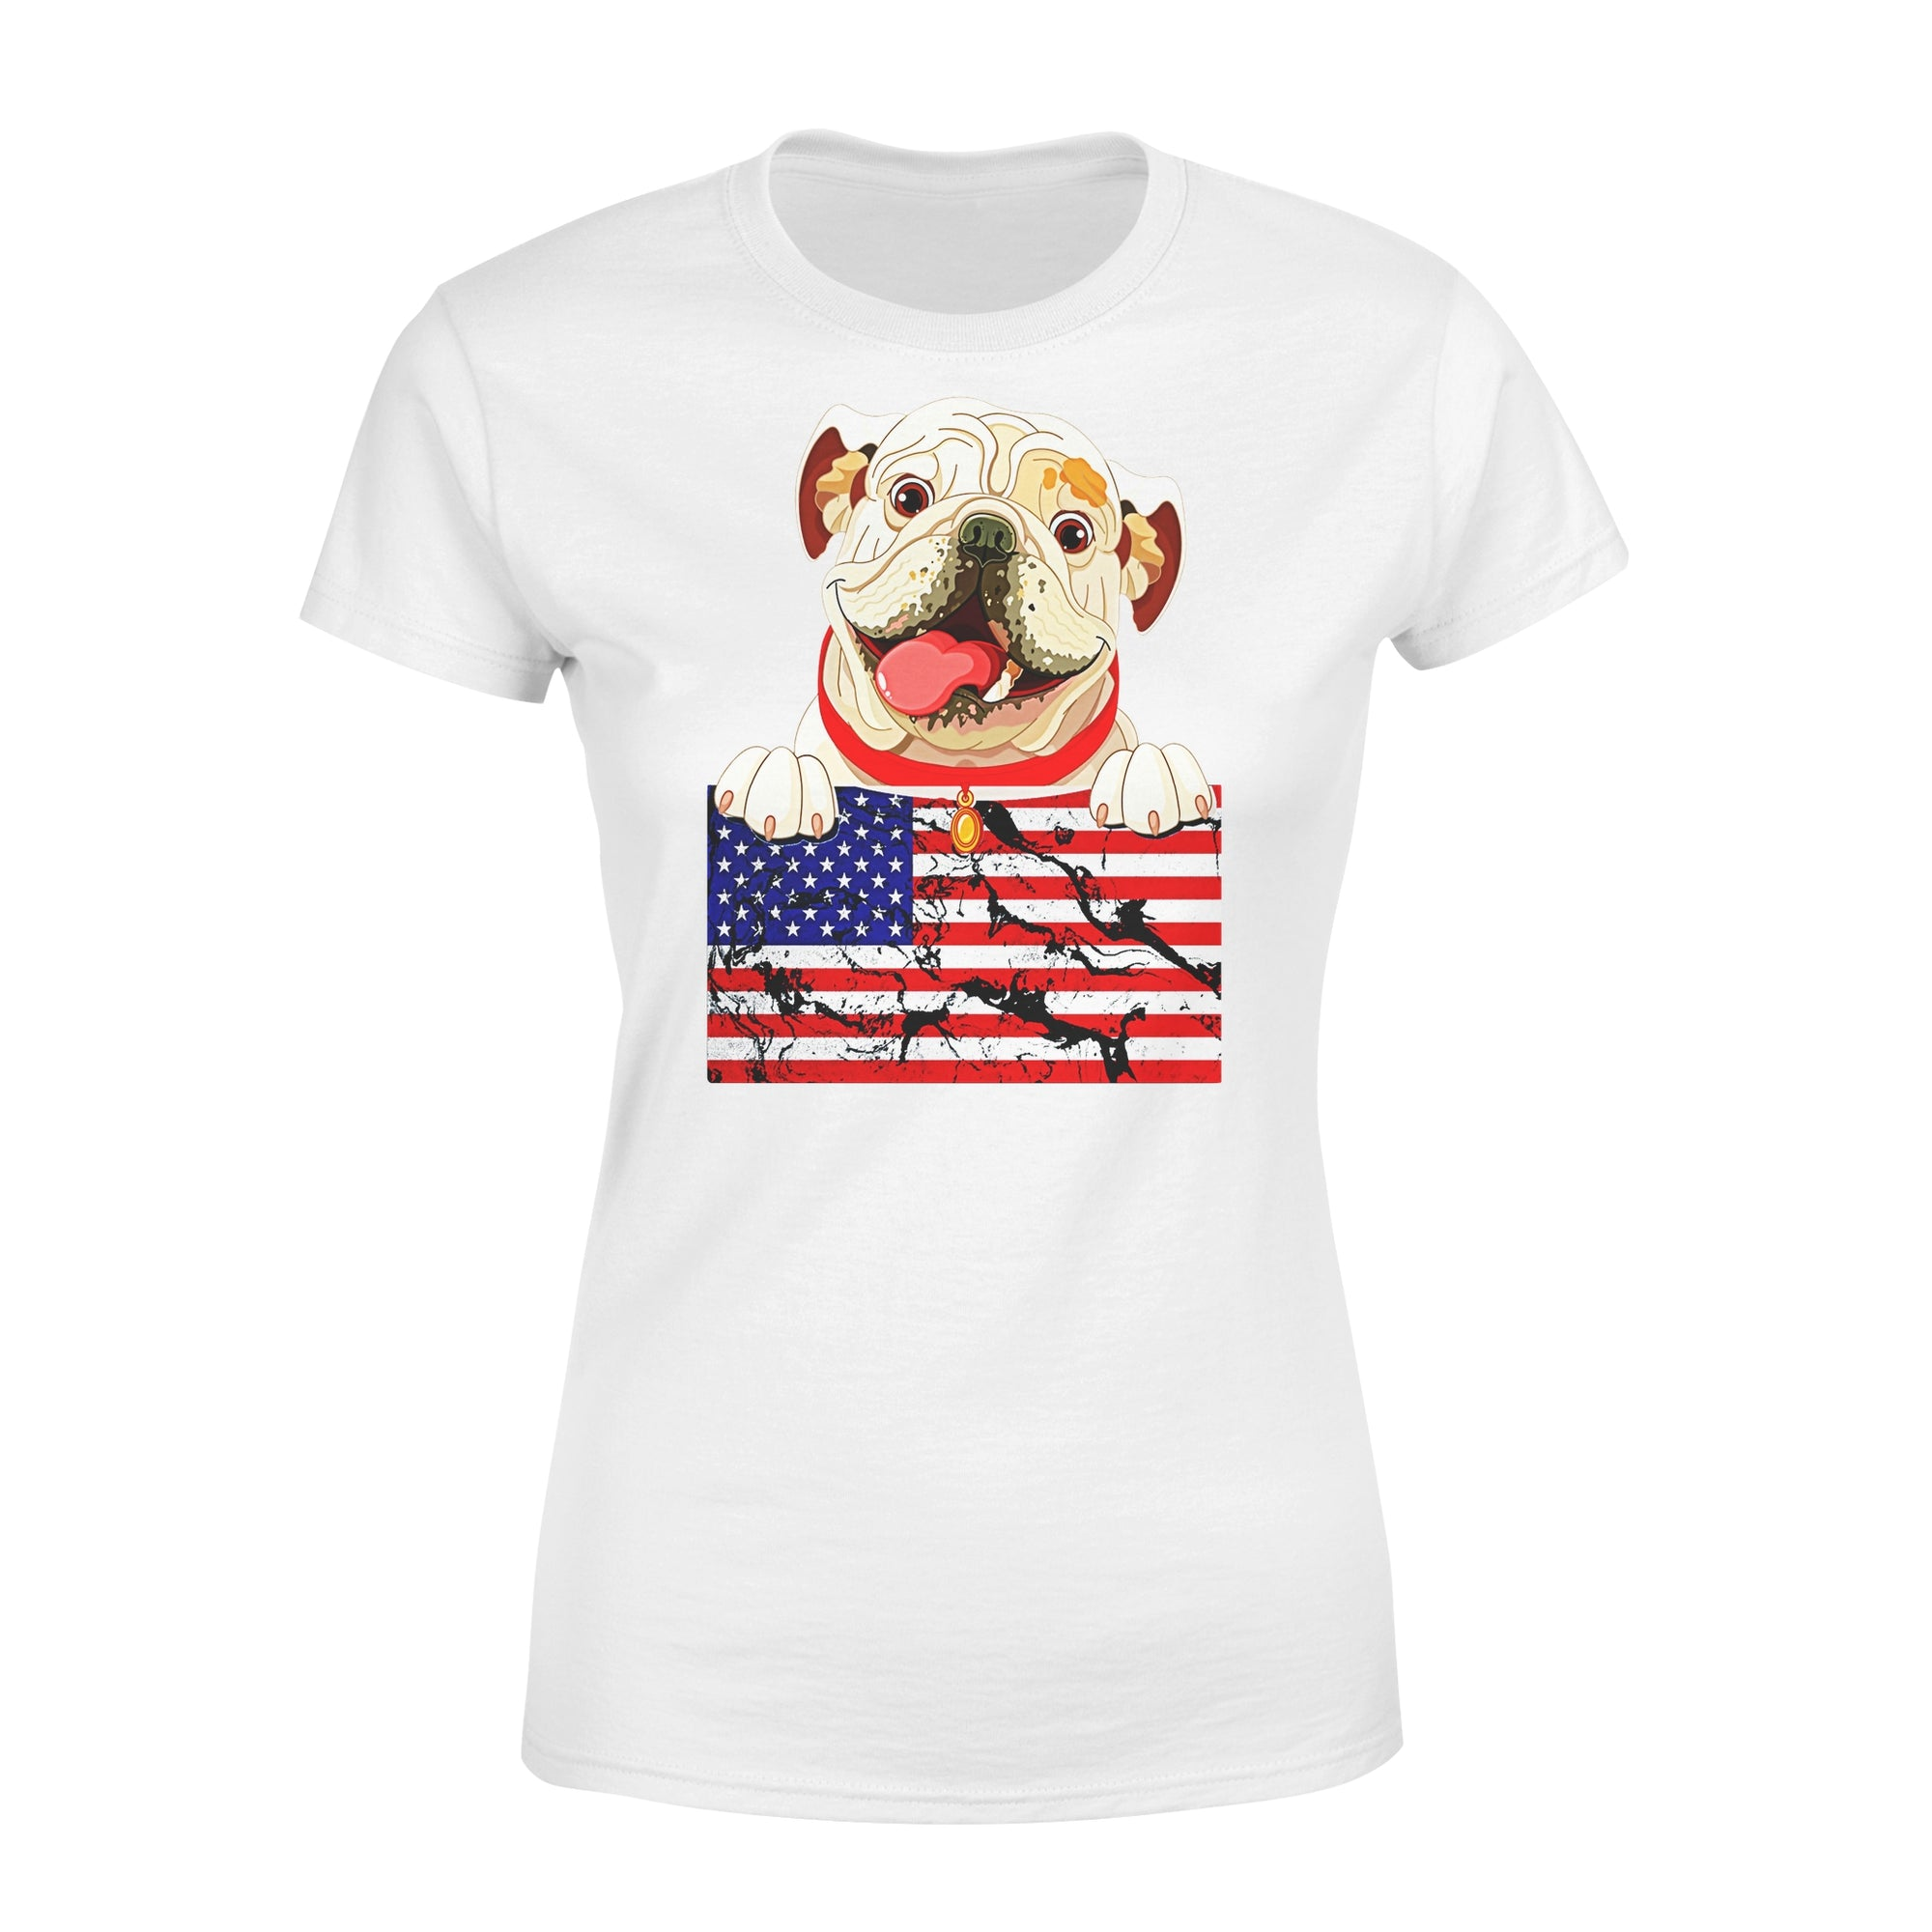 VIRA Premium Women's Tee For Bulldog Lovers